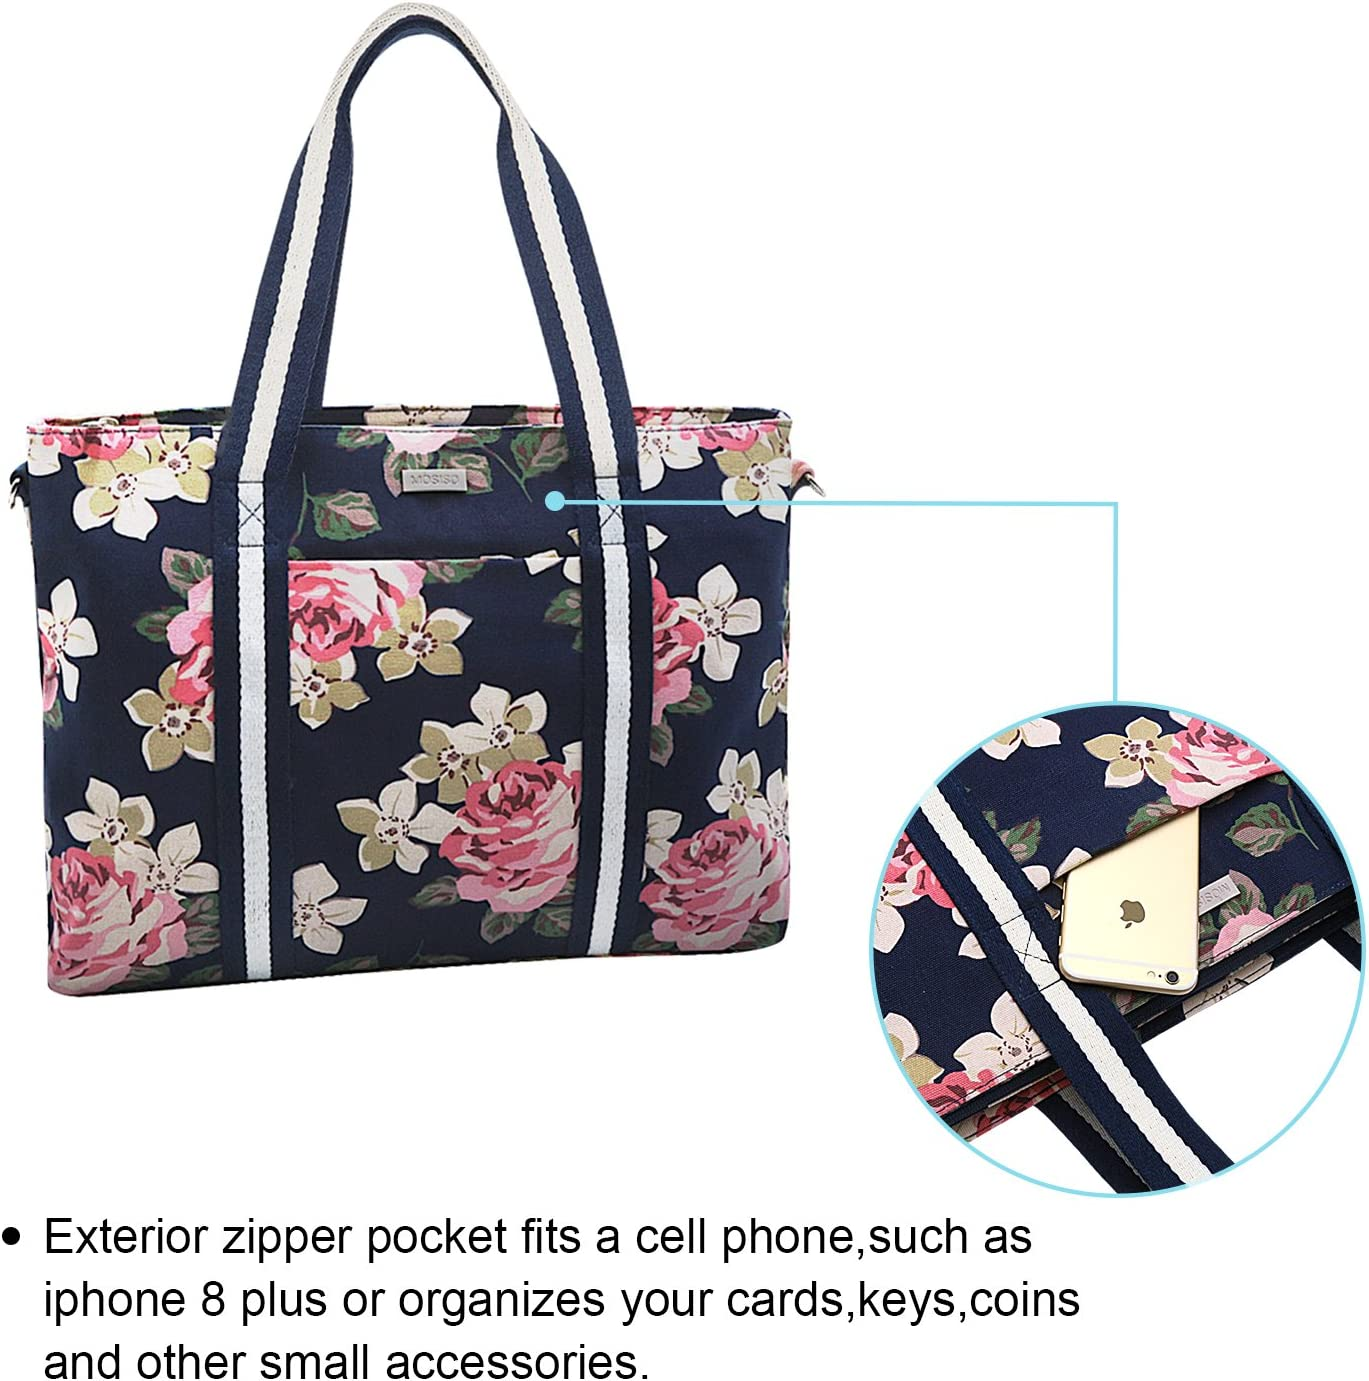 MOSISO Laptop Tote Bag Canvas Classic Multifunctional Work Travel Shopping Duffel Carrying Shoulder Handbag Compatible with Notebook MacBook Ultrabook Chromebook,Dark Blue Base Rose Up to 15.6 Inch